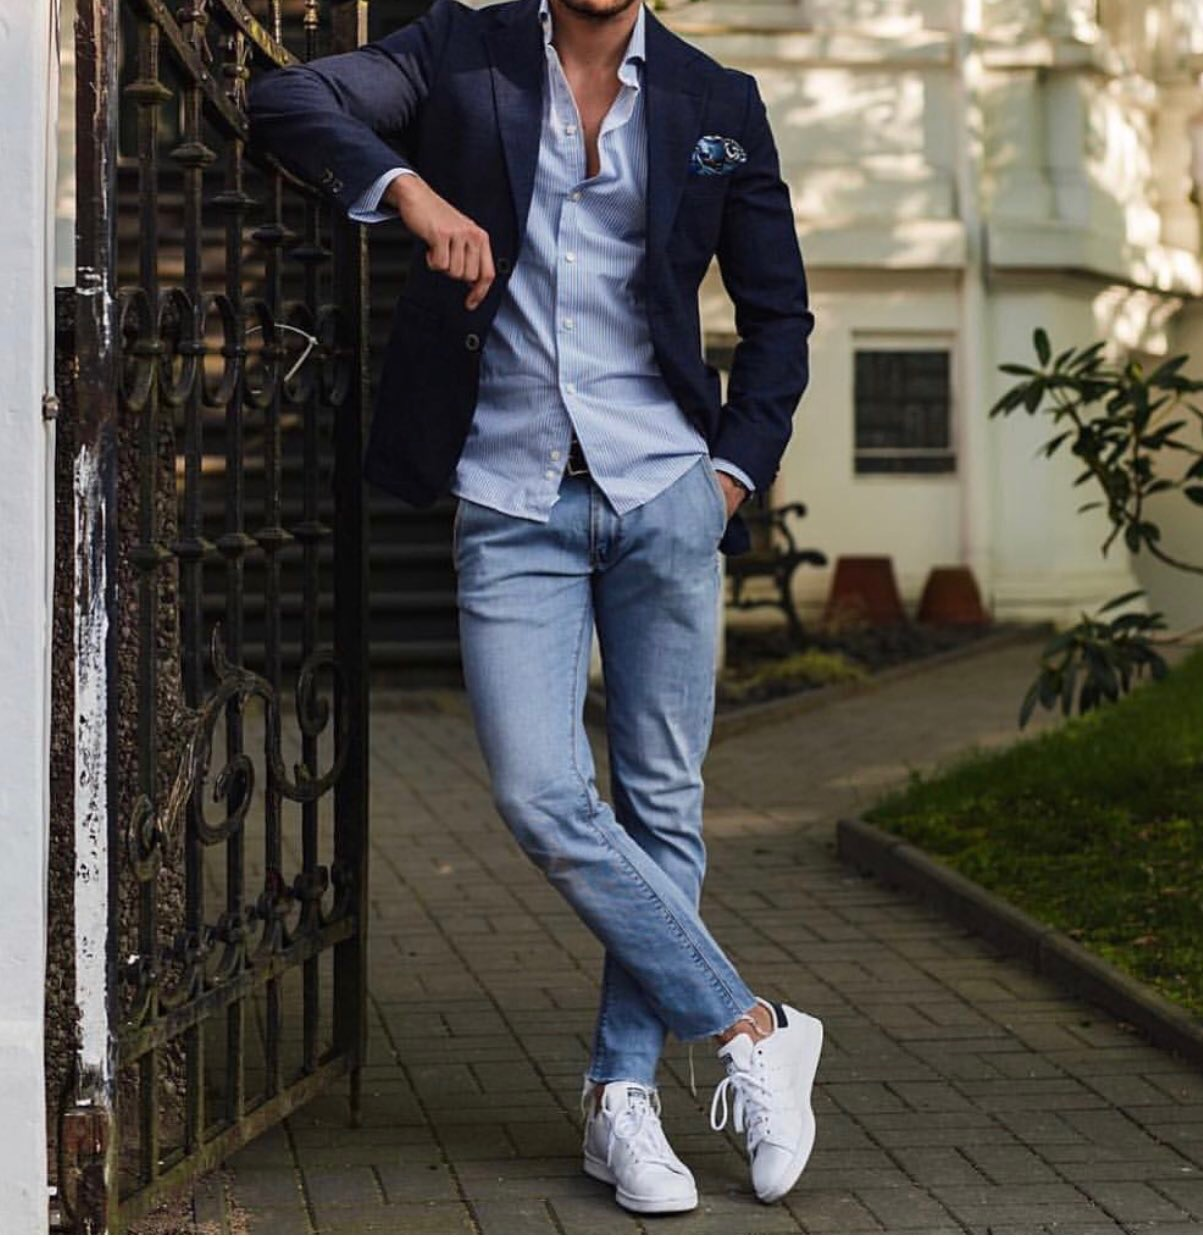 Man in stylish navy blue coat partnered with a light blue button-down shirt, jeans and sneakers